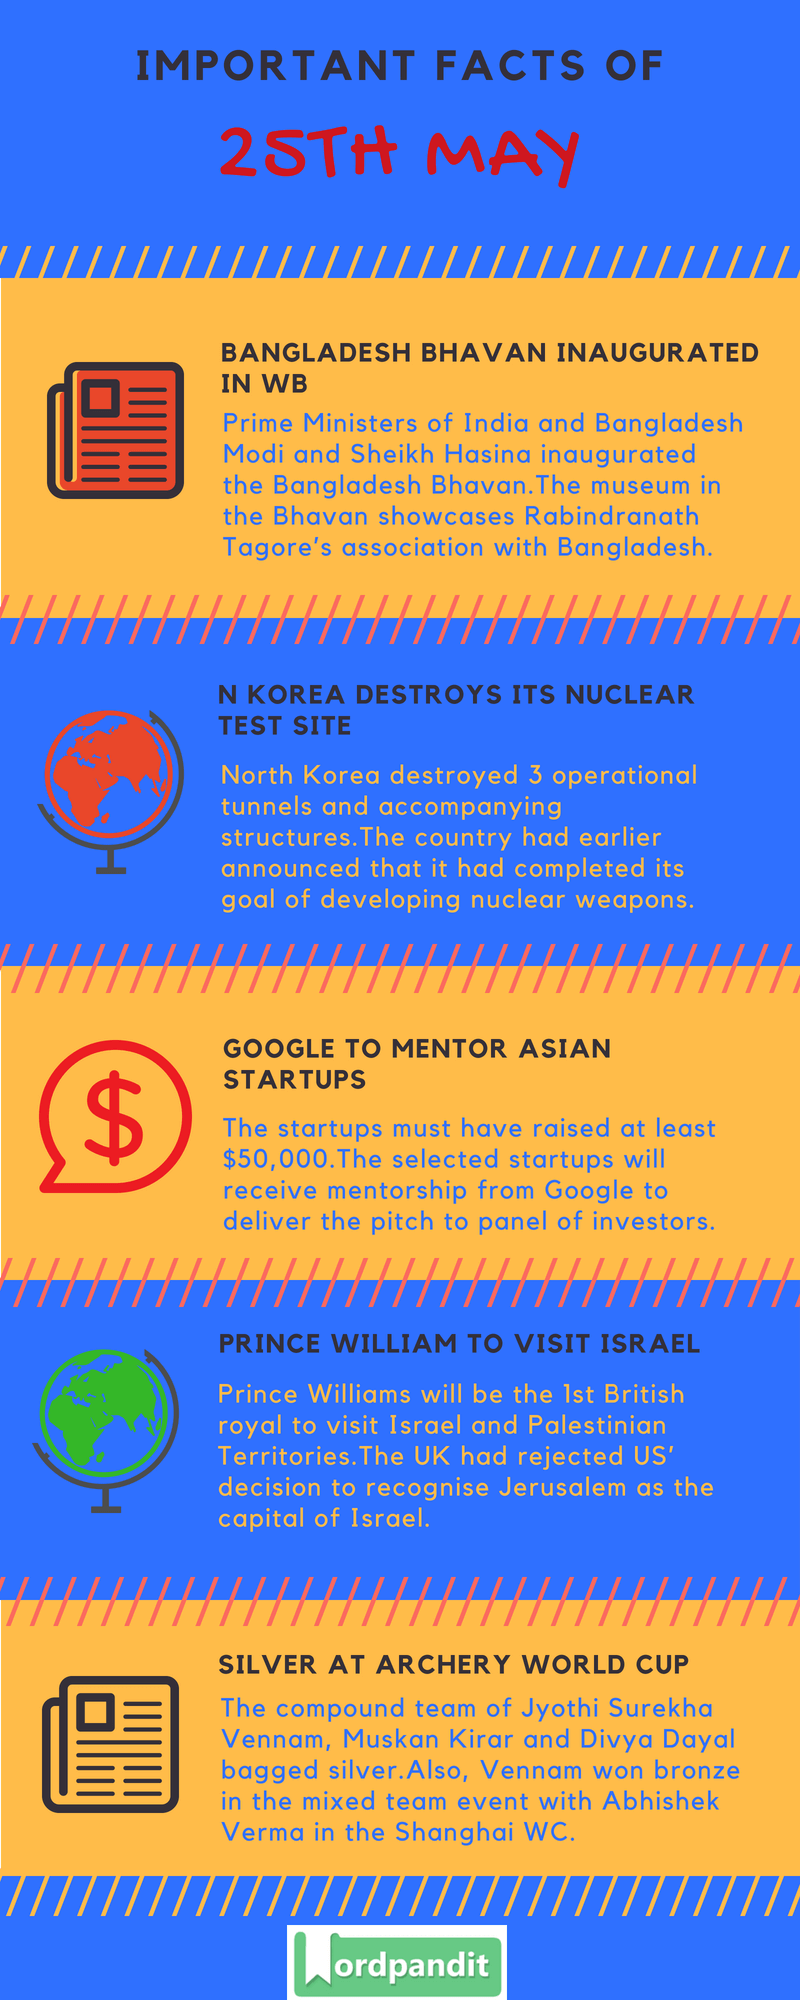 Daily Current Affairs 25 May 2018 Current Affairs Quiz May 25 2018 Current Affairs Infographic